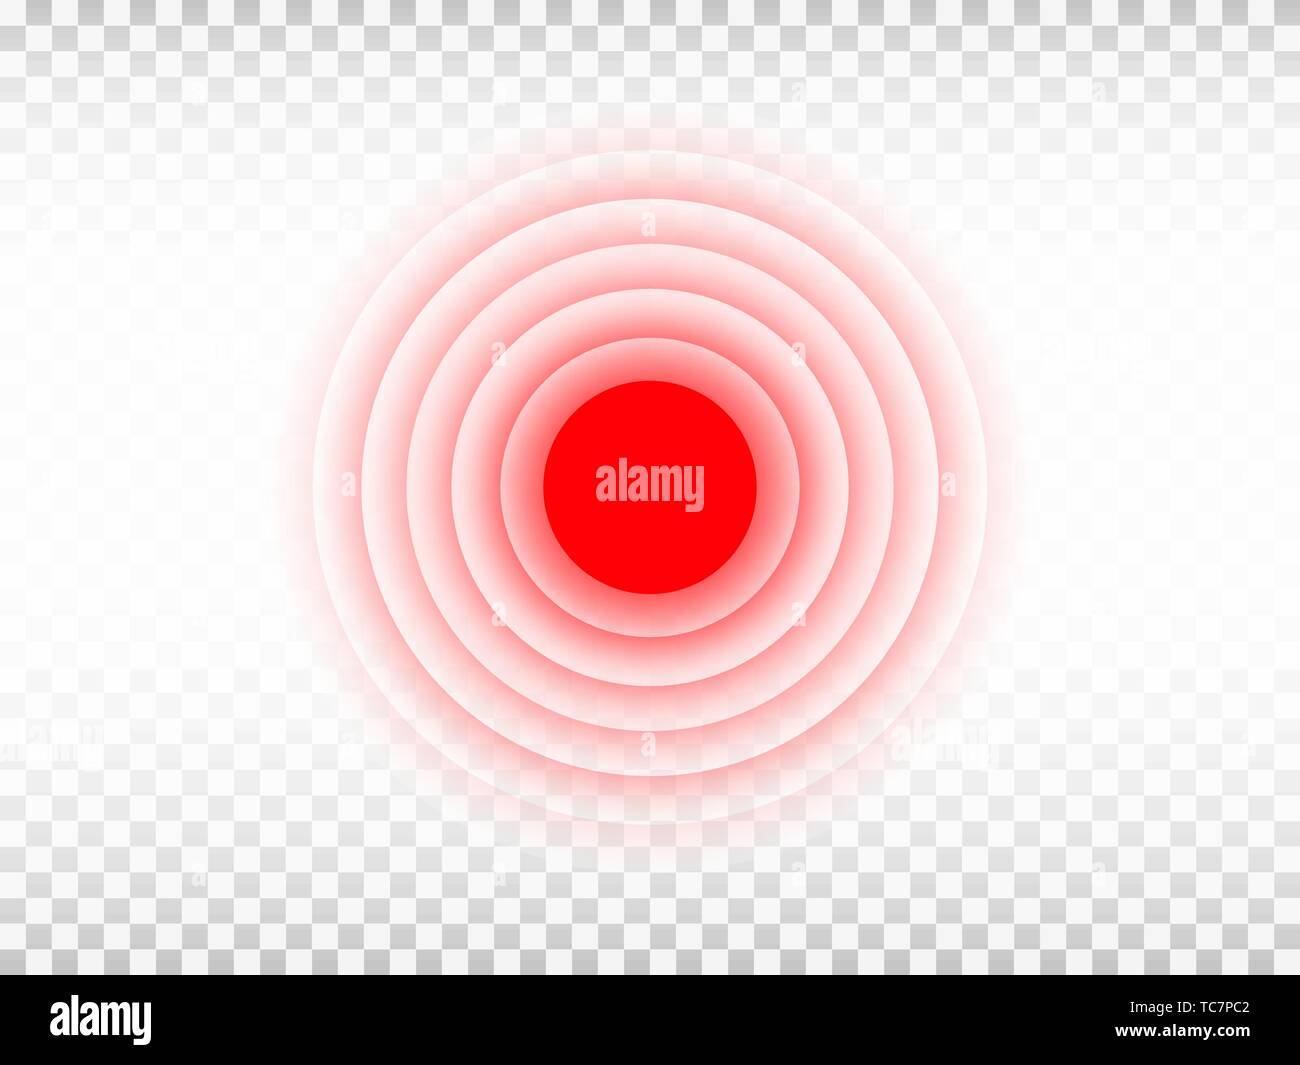 Pain red circle on transparent background. Aching place template. Medicine design element for advertisement or information banner. Painful spot mark - Stock Vector